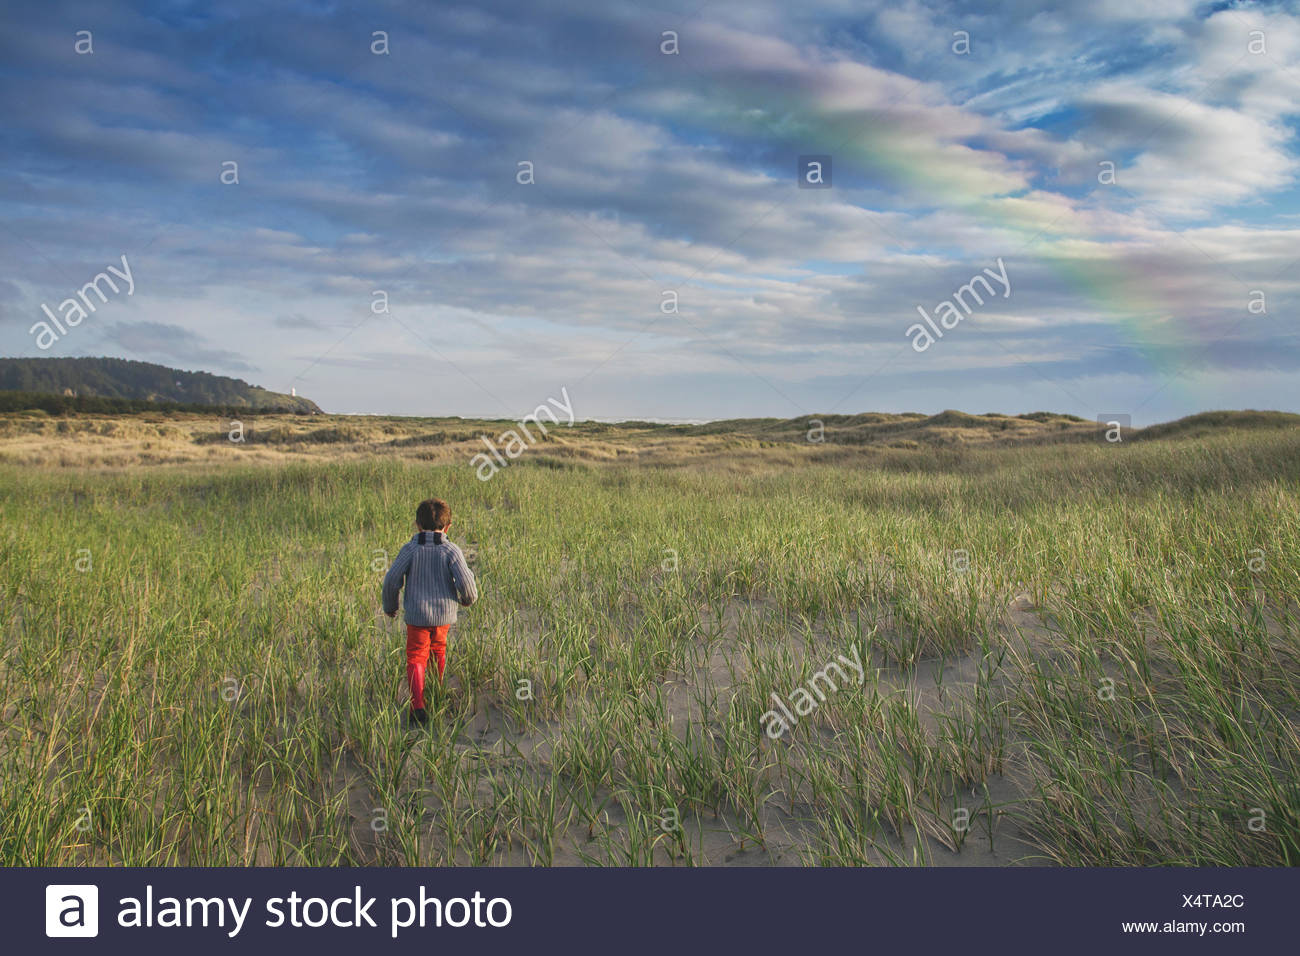 Rear view of a boy running through stand dunes with rainbow in the sky - Stock Image